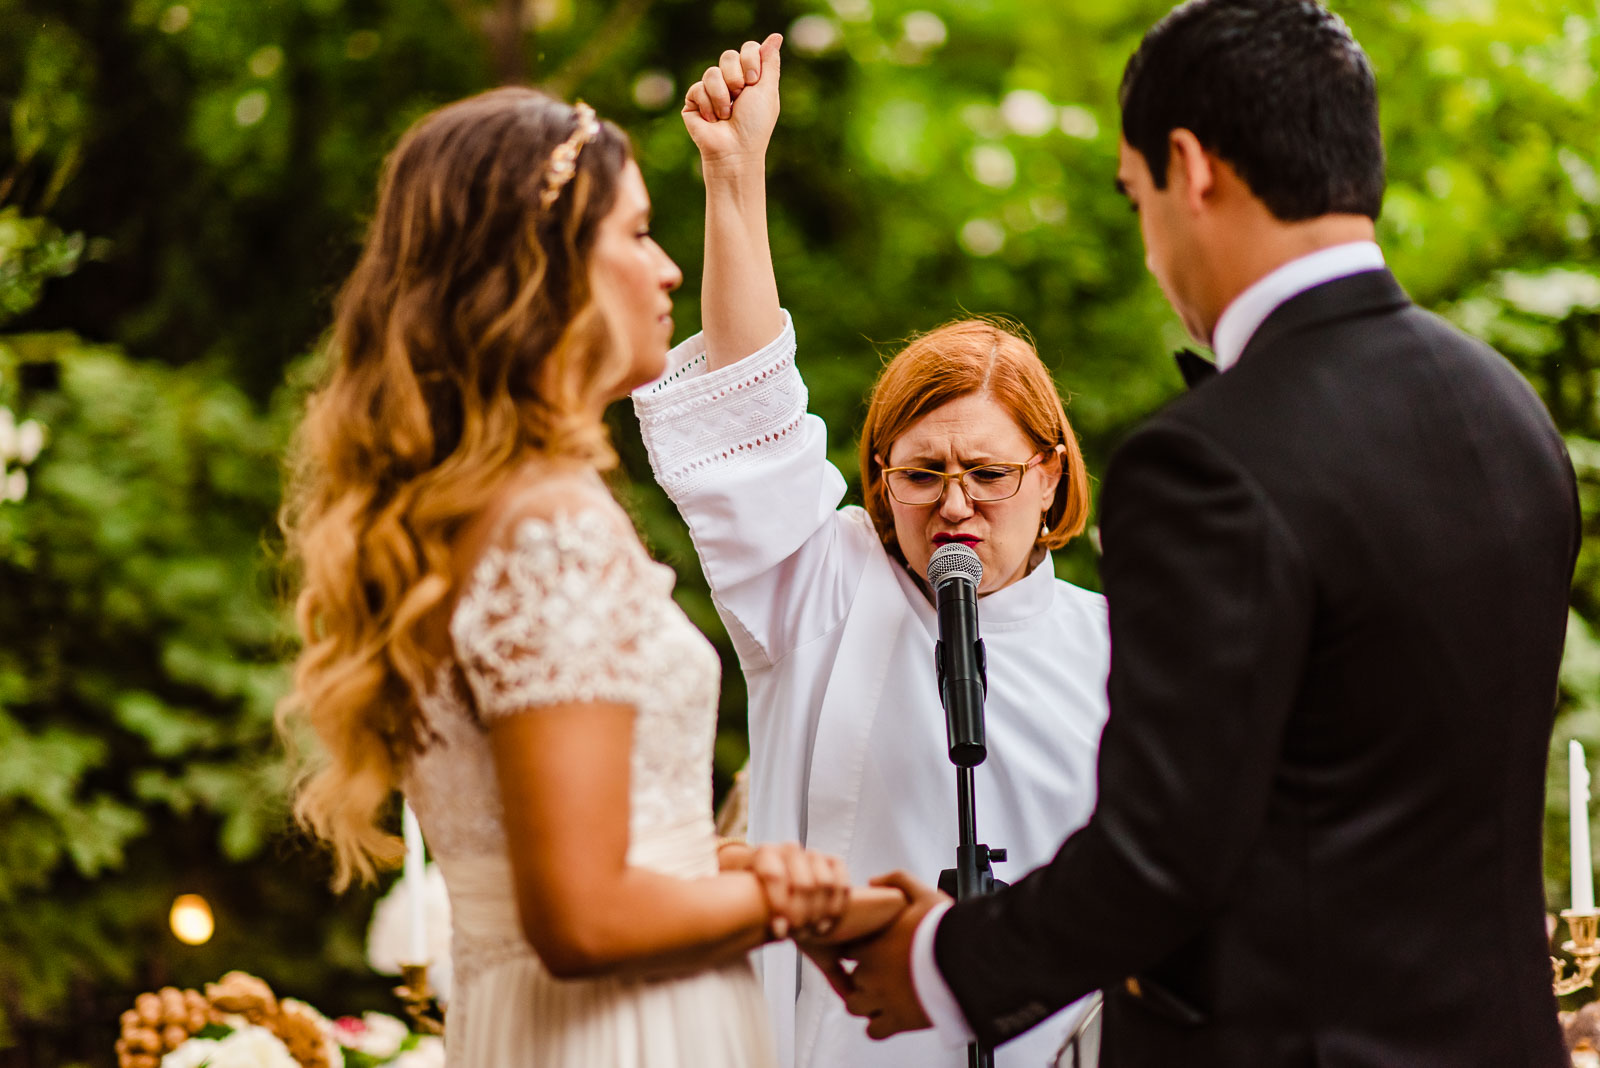 Officiant raises ring above bride and groom